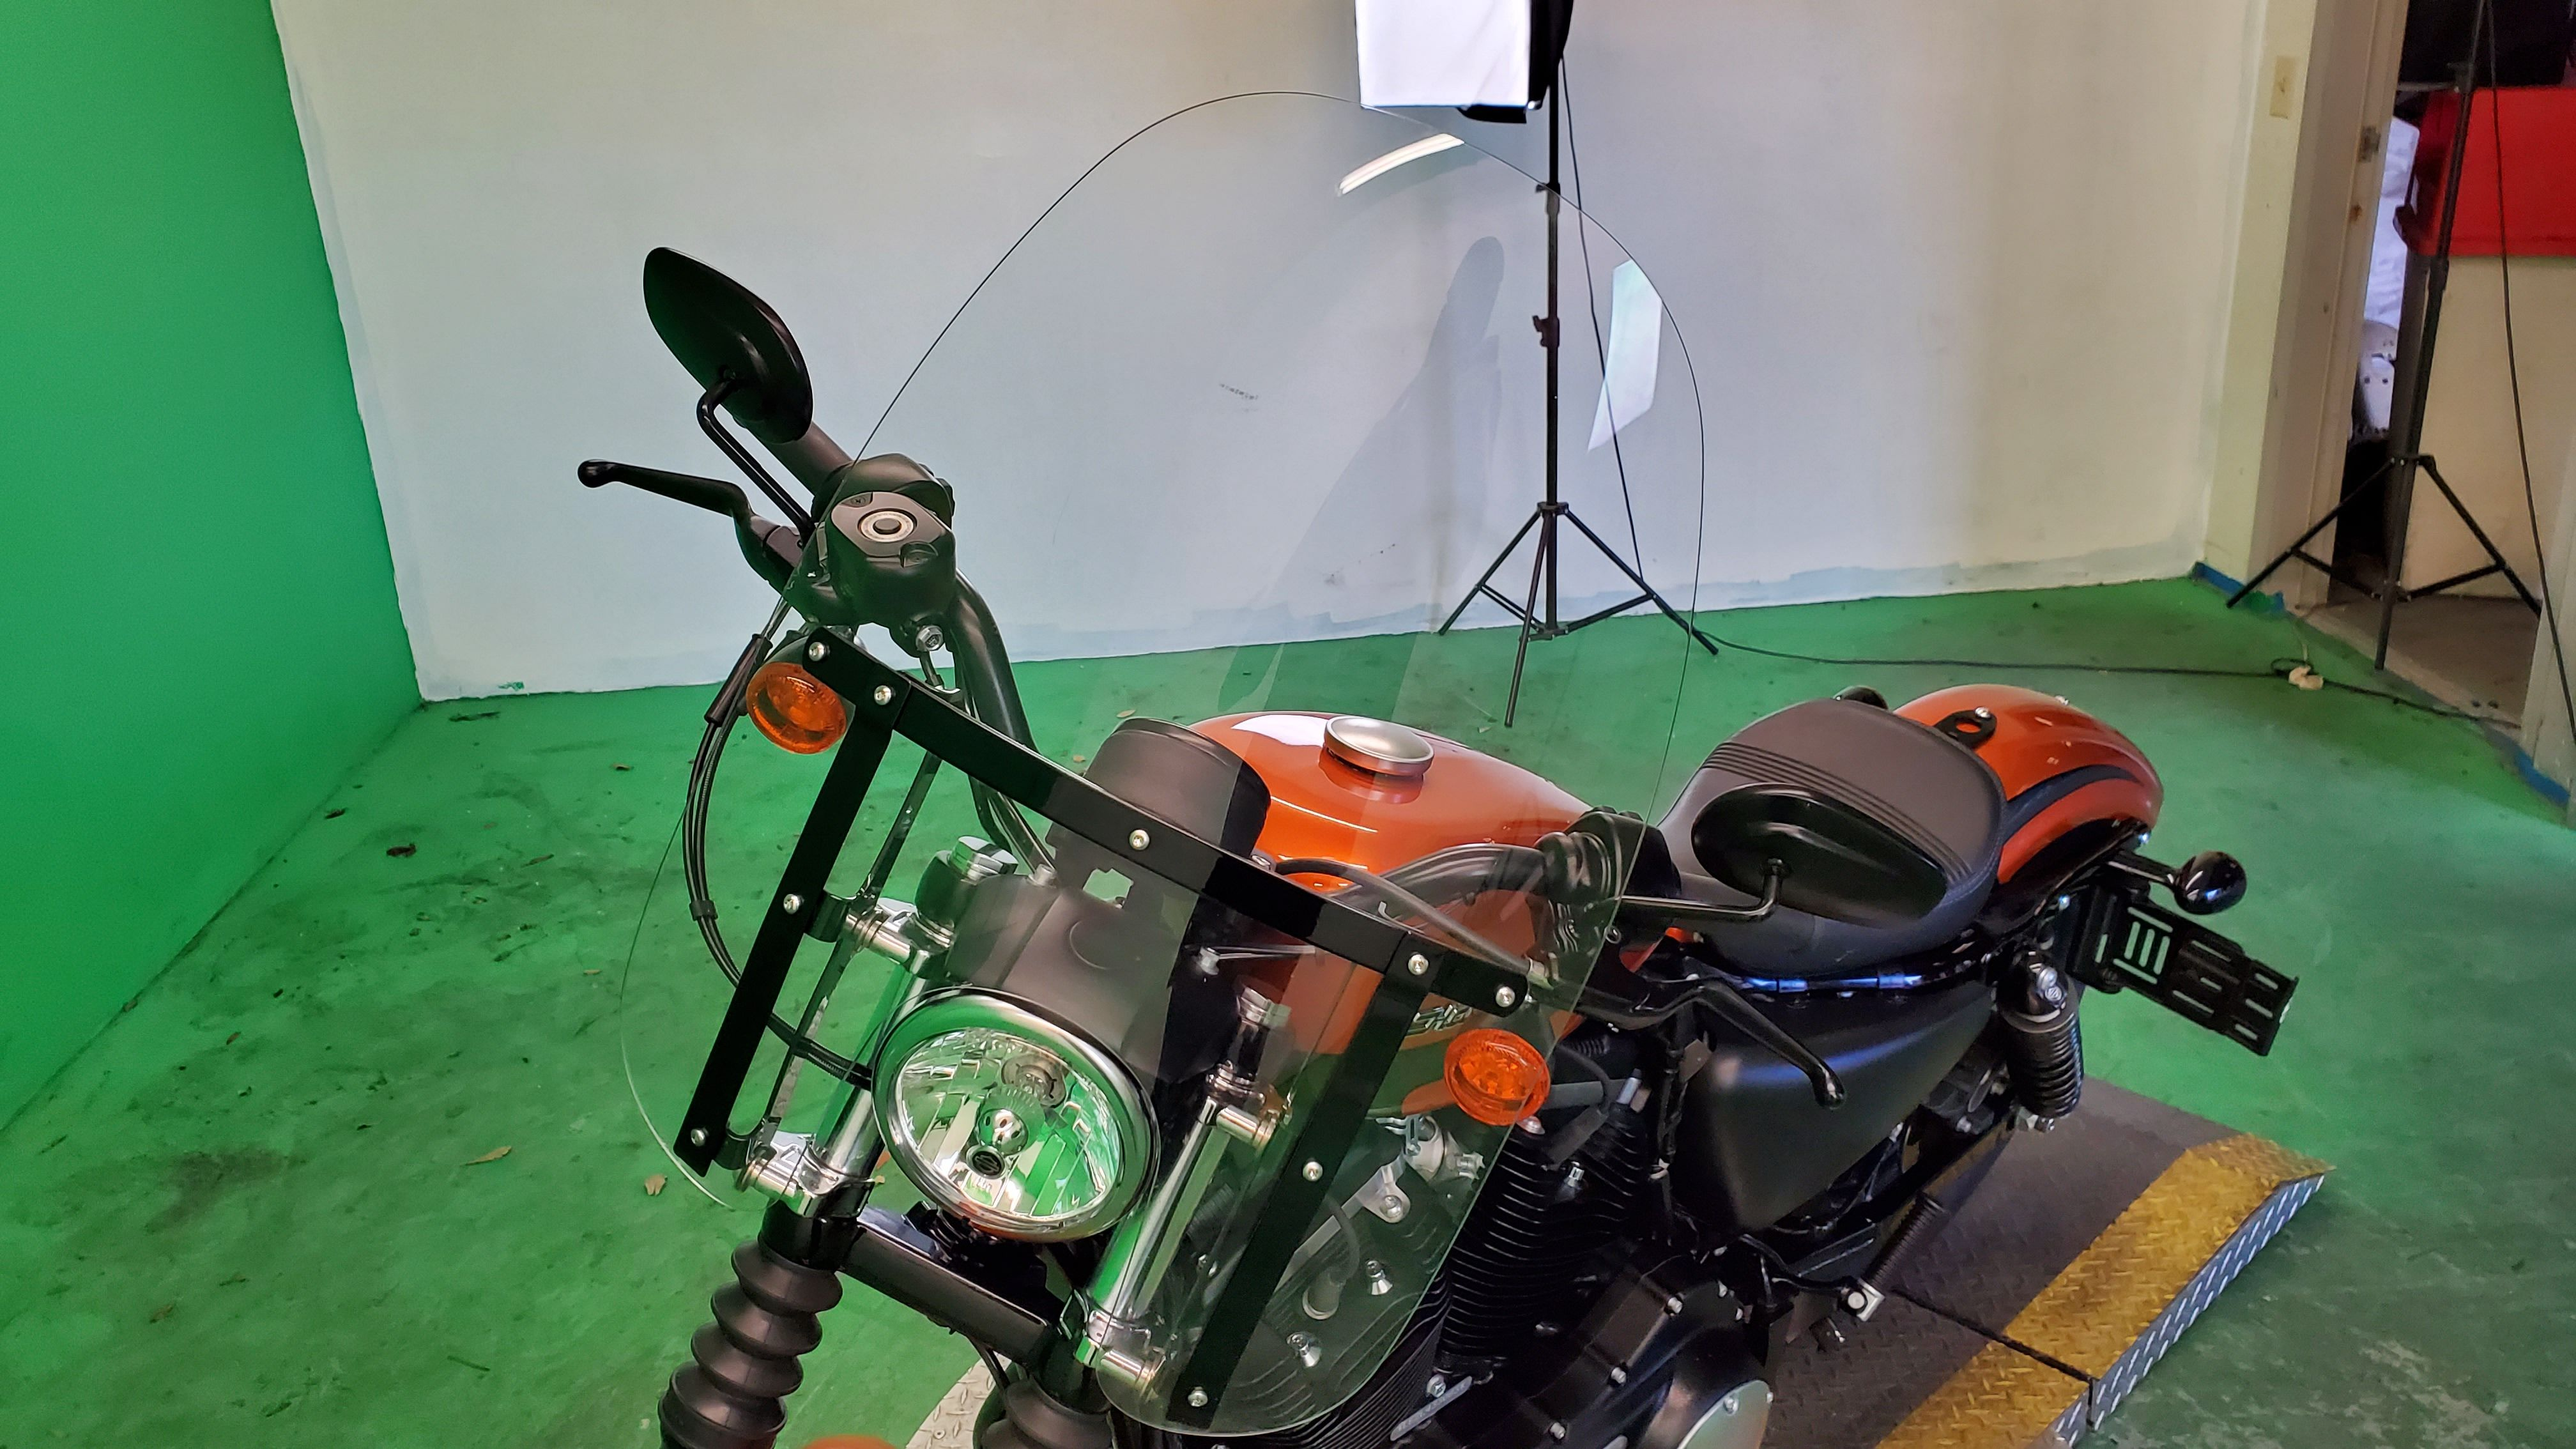 Certified Pre-Owned 2020 Harley-Davidson Iron 883 XL883N